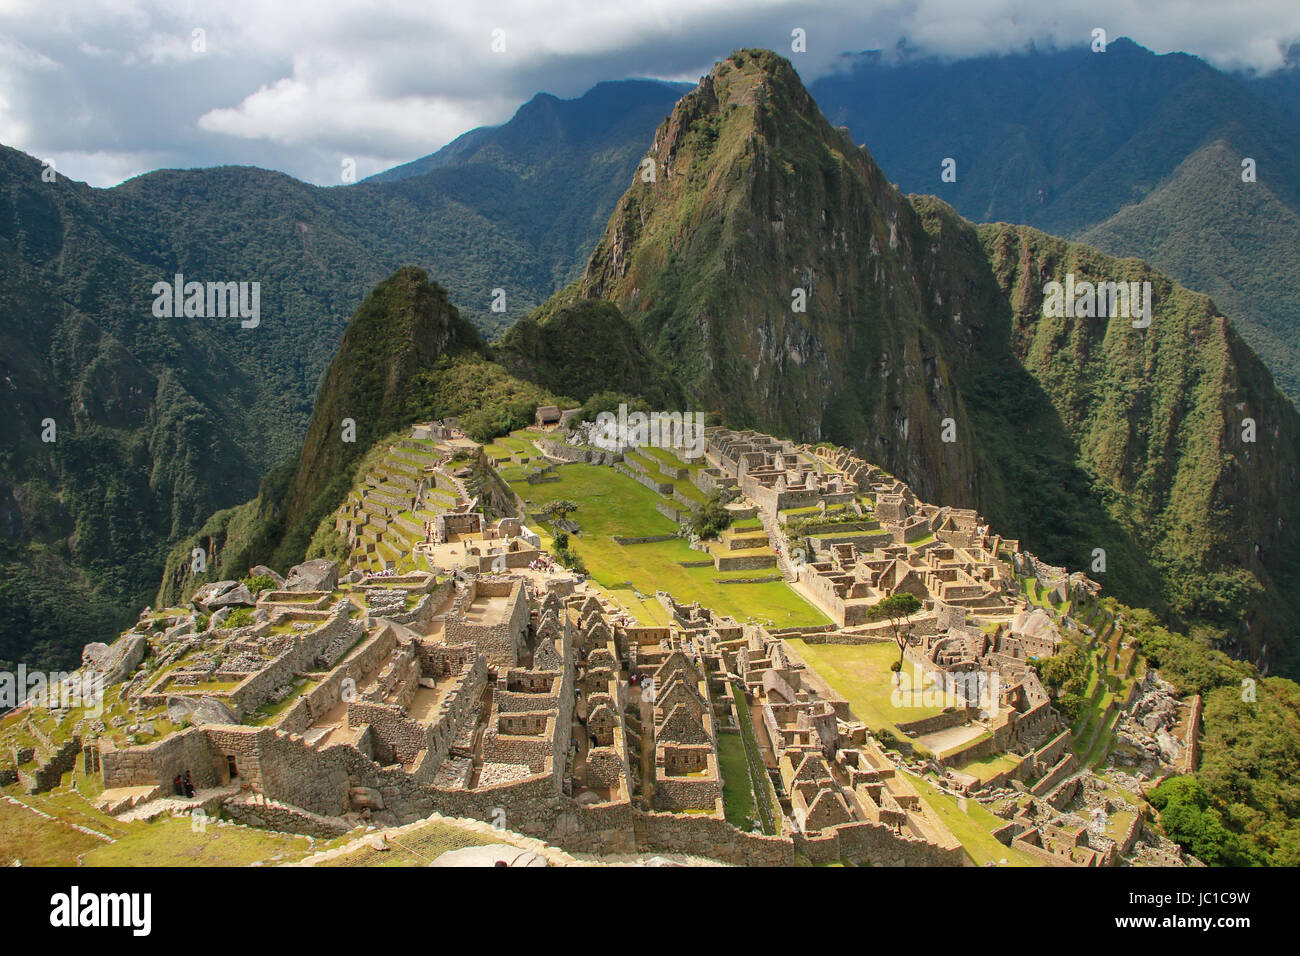 Inca citadel Machu Picchu in Peru. In 2007 Machu Picchu was voted one of the New Seven Wonders of the World. - Stock Image